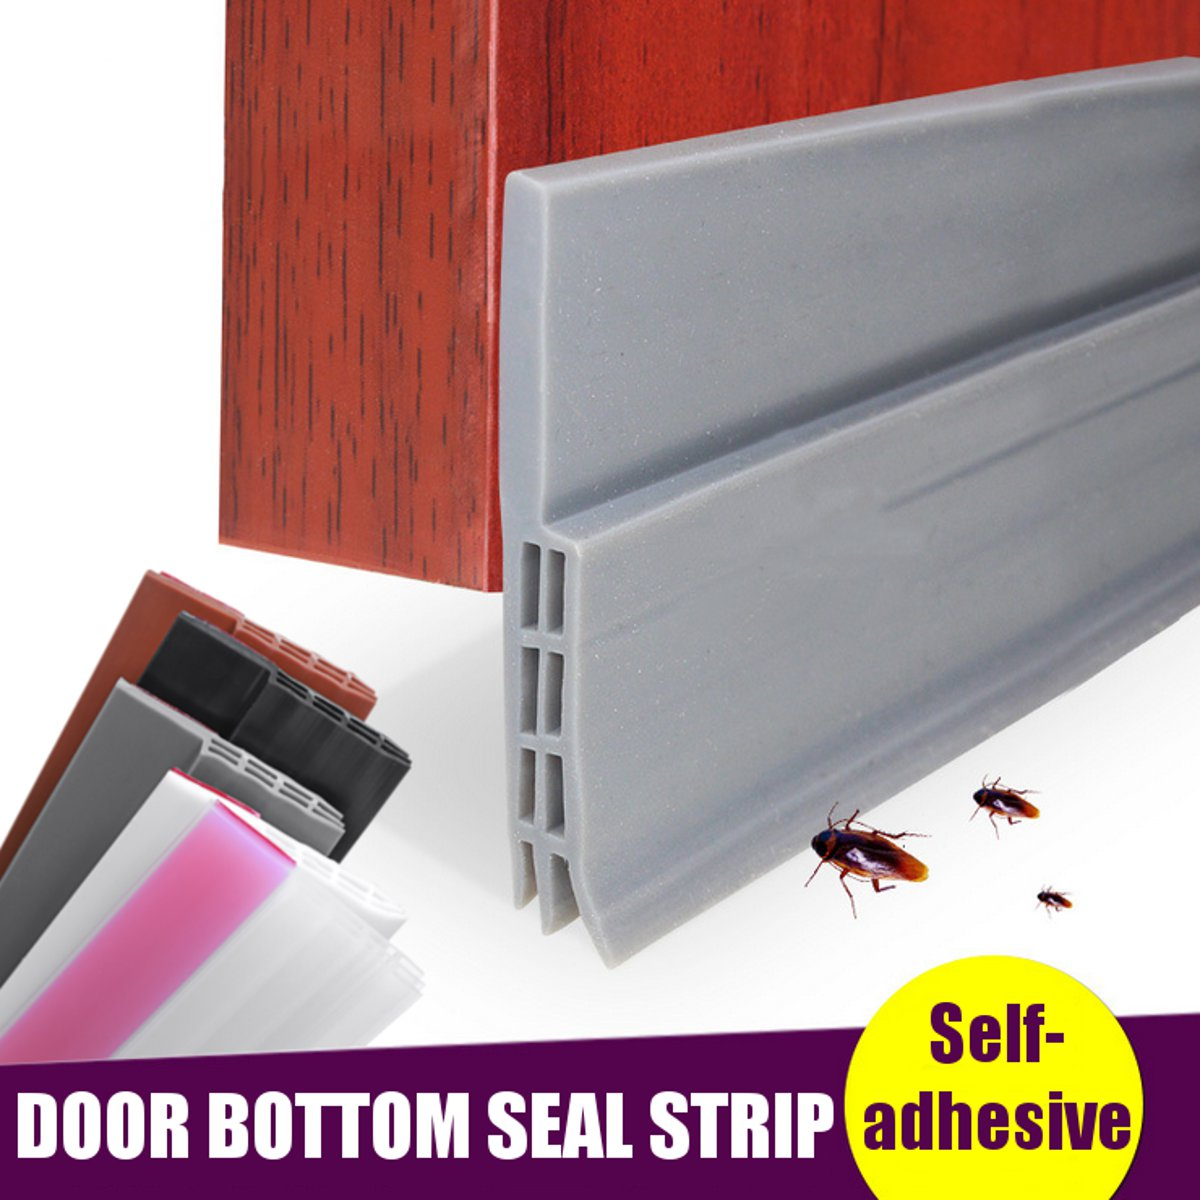 Rubber Self-adhesive Door Bottom Sealing Strip Bedroom Soundproof Windproof Sealer Guard Stopper Furniture Accessories 5 Colors